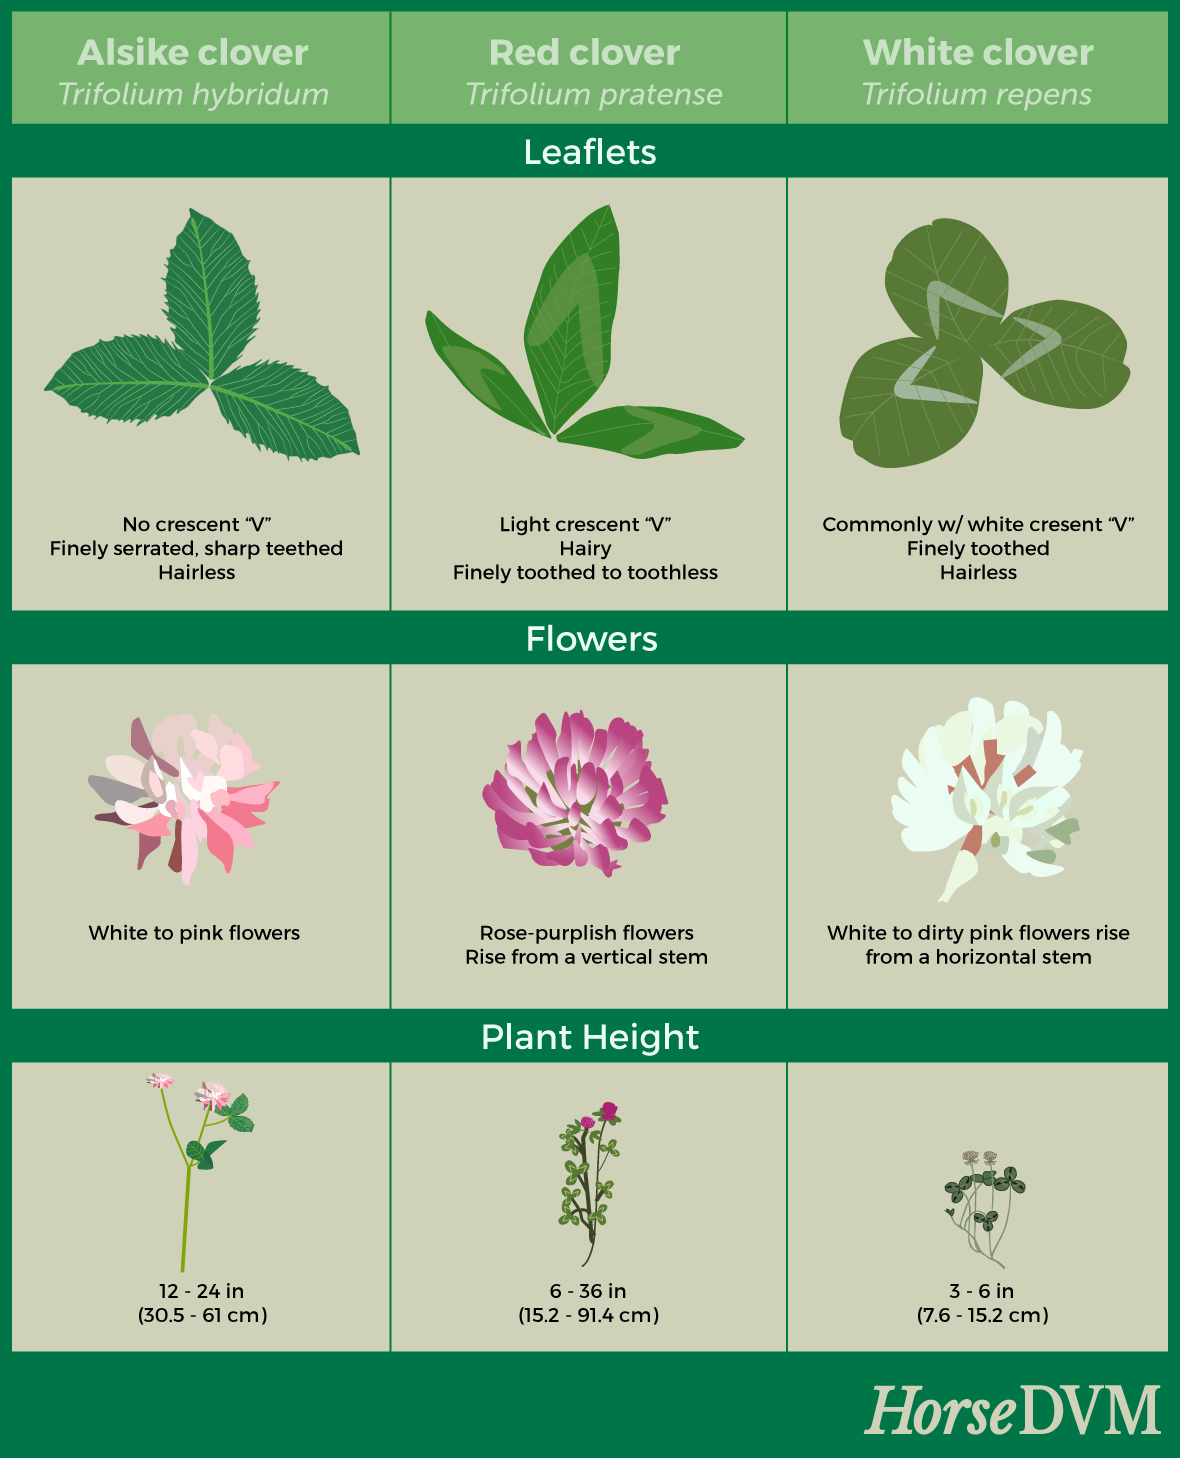 Clover Species Comparison With Images